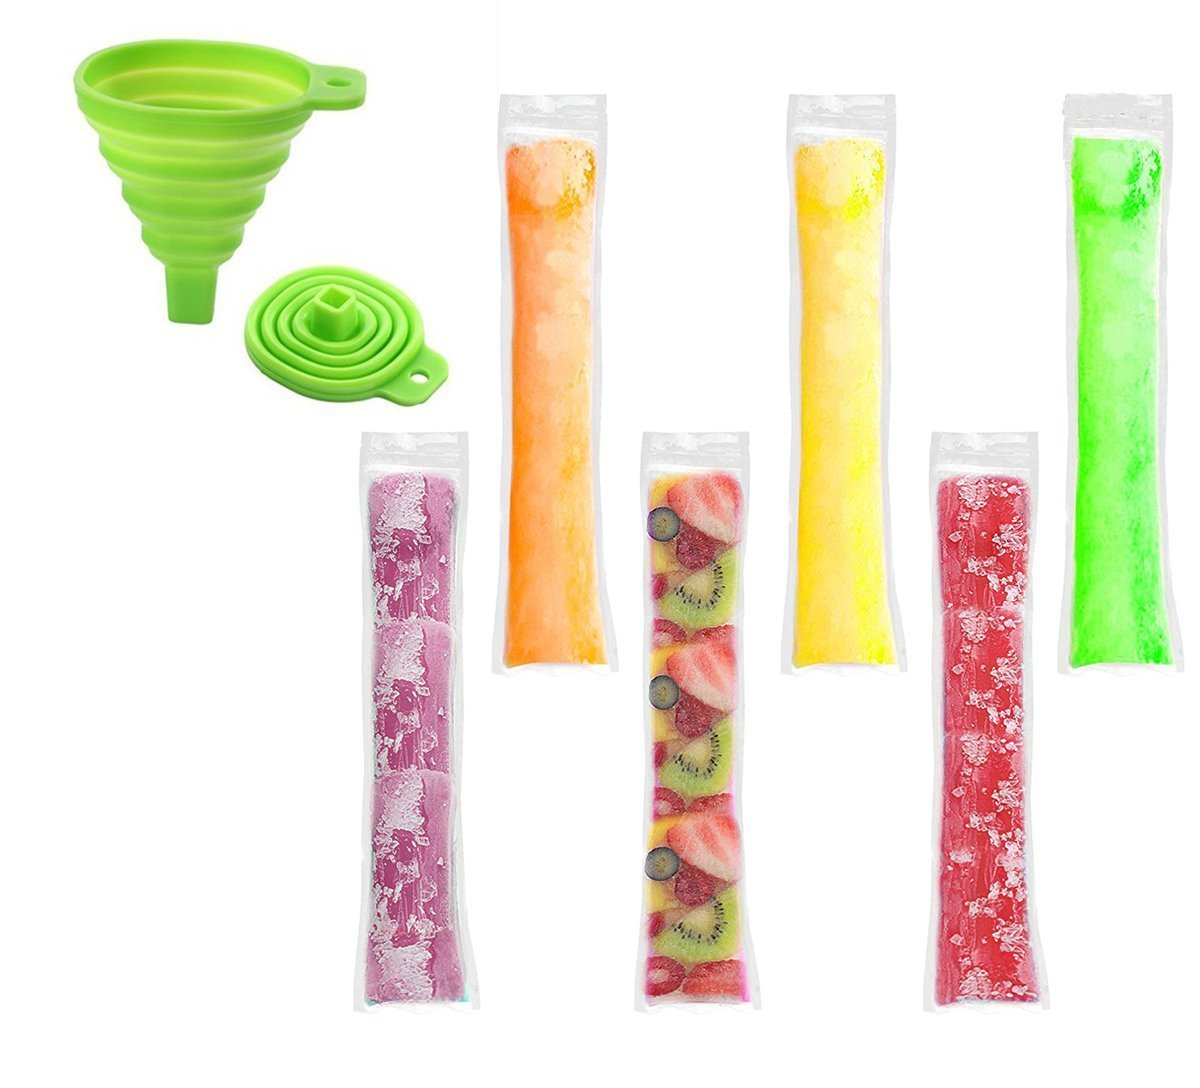 "120pcs Ice Pop Molds Bags, Popsicle Mold With Zip Seals with Foldable Funnel, 2 x 11"" DIY Zip-Top Ice Pop Pouches for Gogurt, Ice Candy or Freeze Pops, BPA Free Freezer Tubes for Kids and Adults (11x2 inch, Clear)"